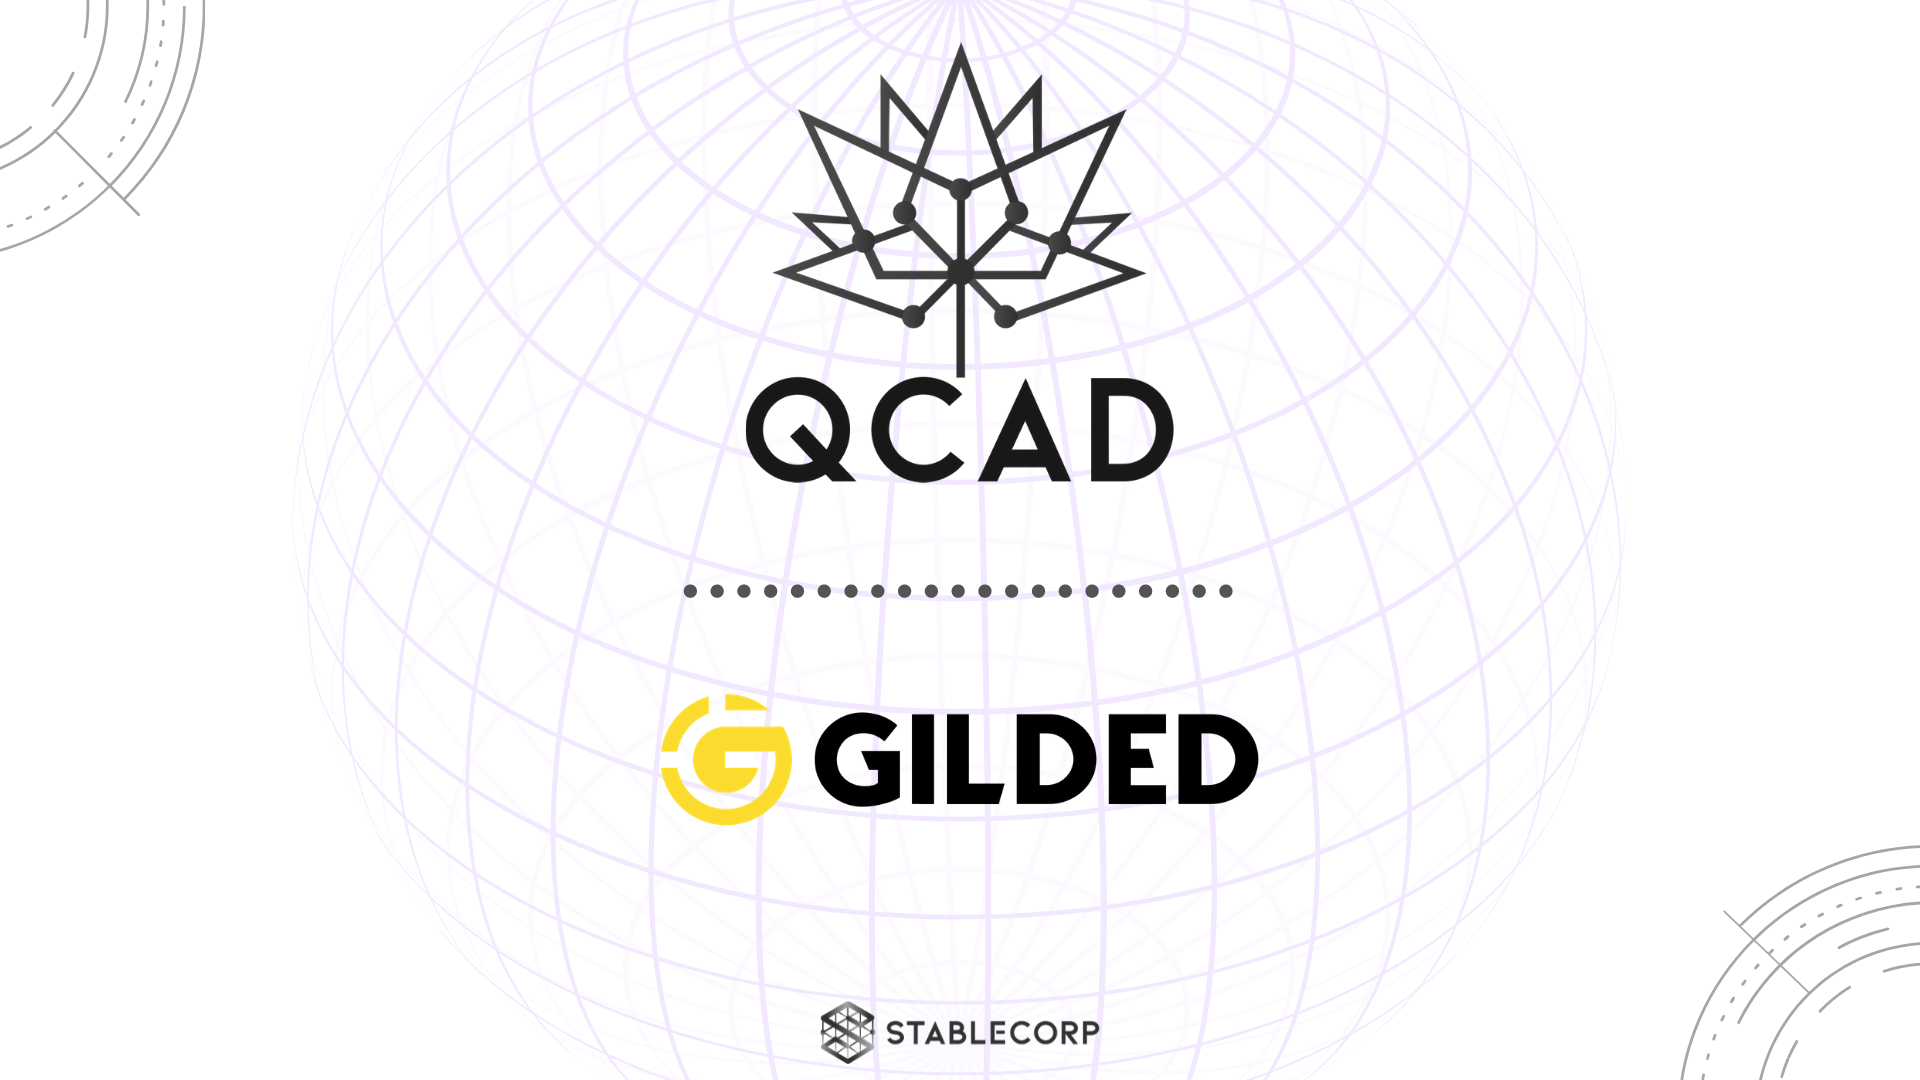 Gilded Supports the QCAD Stablecoin to Facilitate US-Canada Cross Border B2B Payments